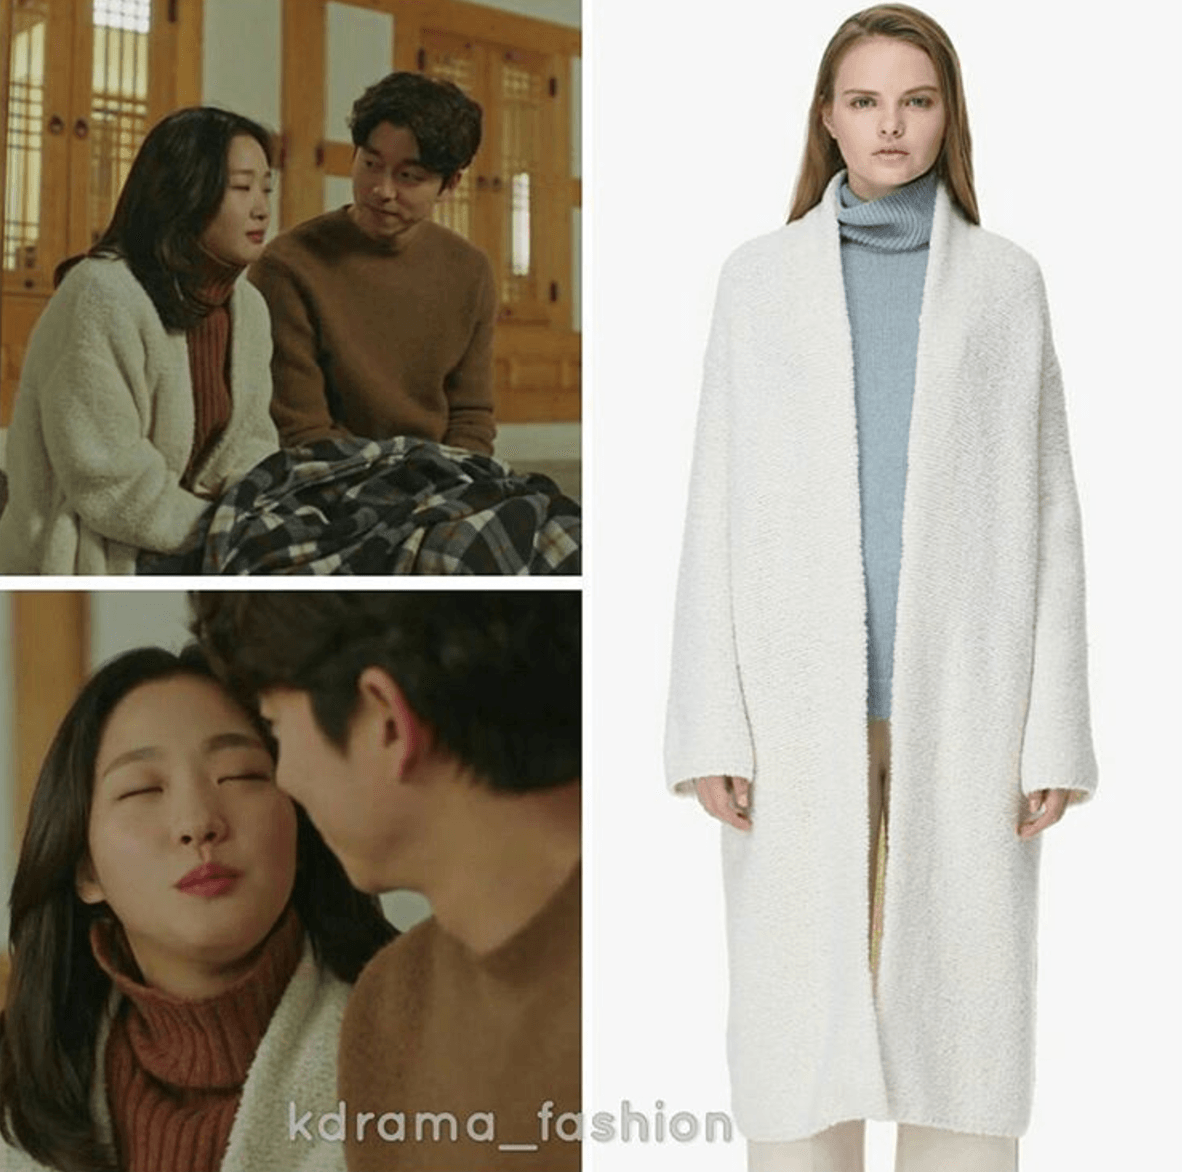 Is To Ji Eun Tak Costs Of Dress It Much Like This How CdtrxshQ